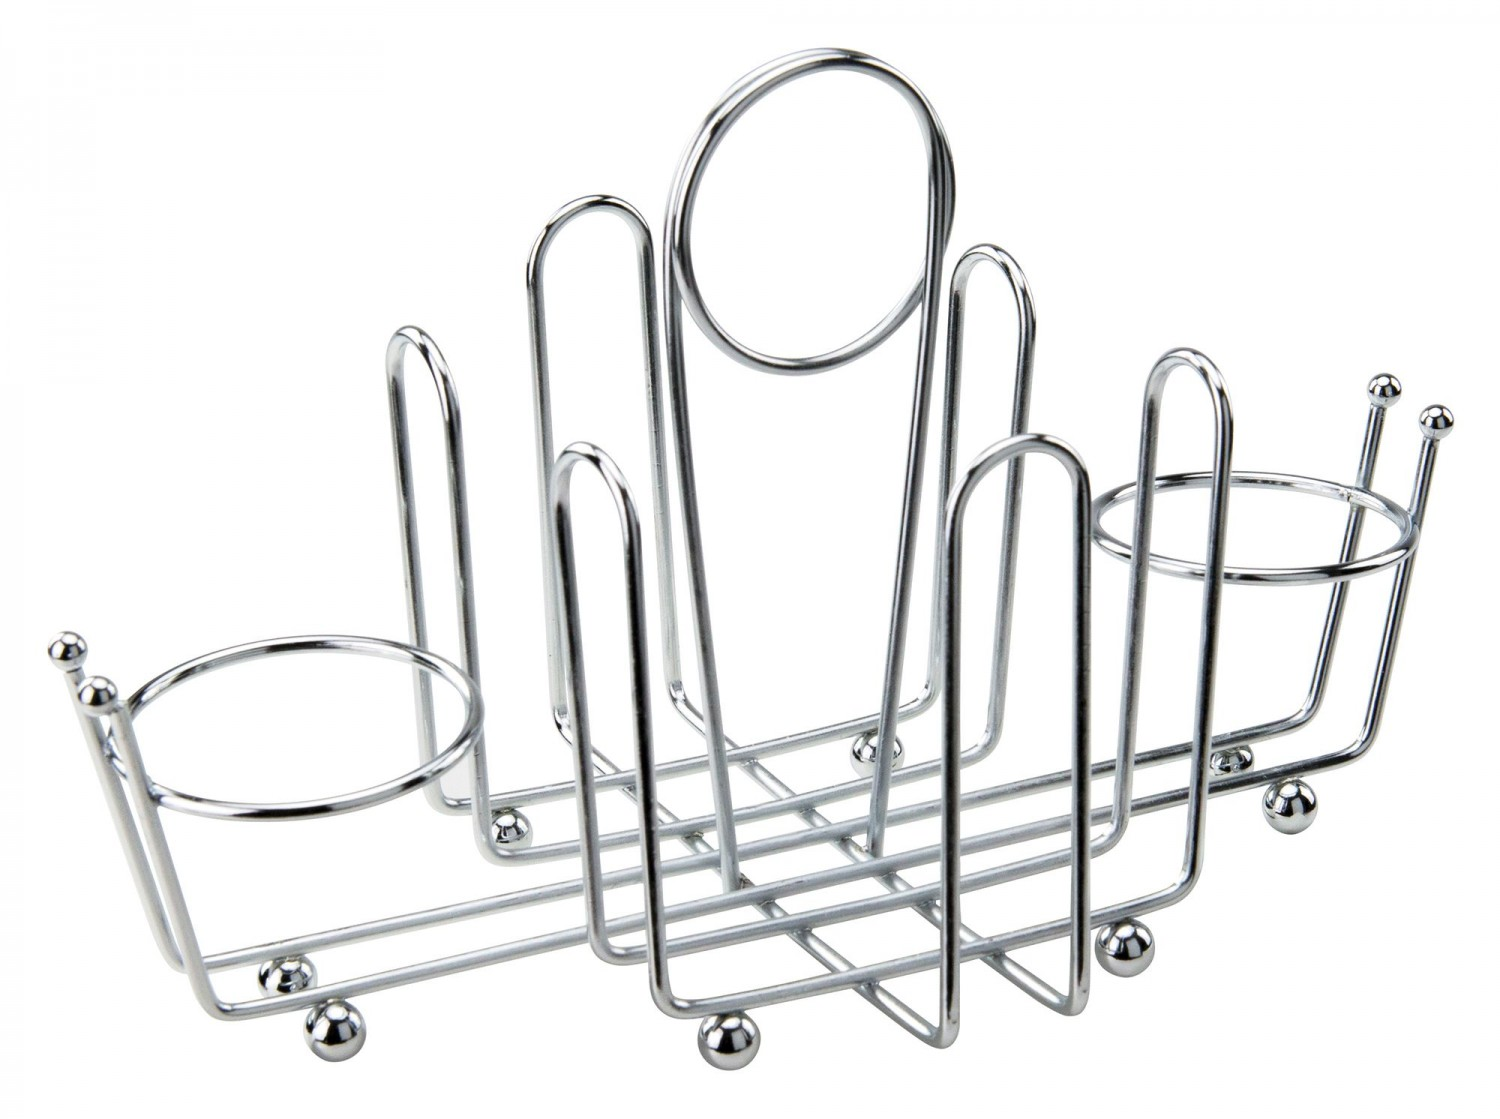 Winco WH-1 Chrome-Plated Condiment Holder